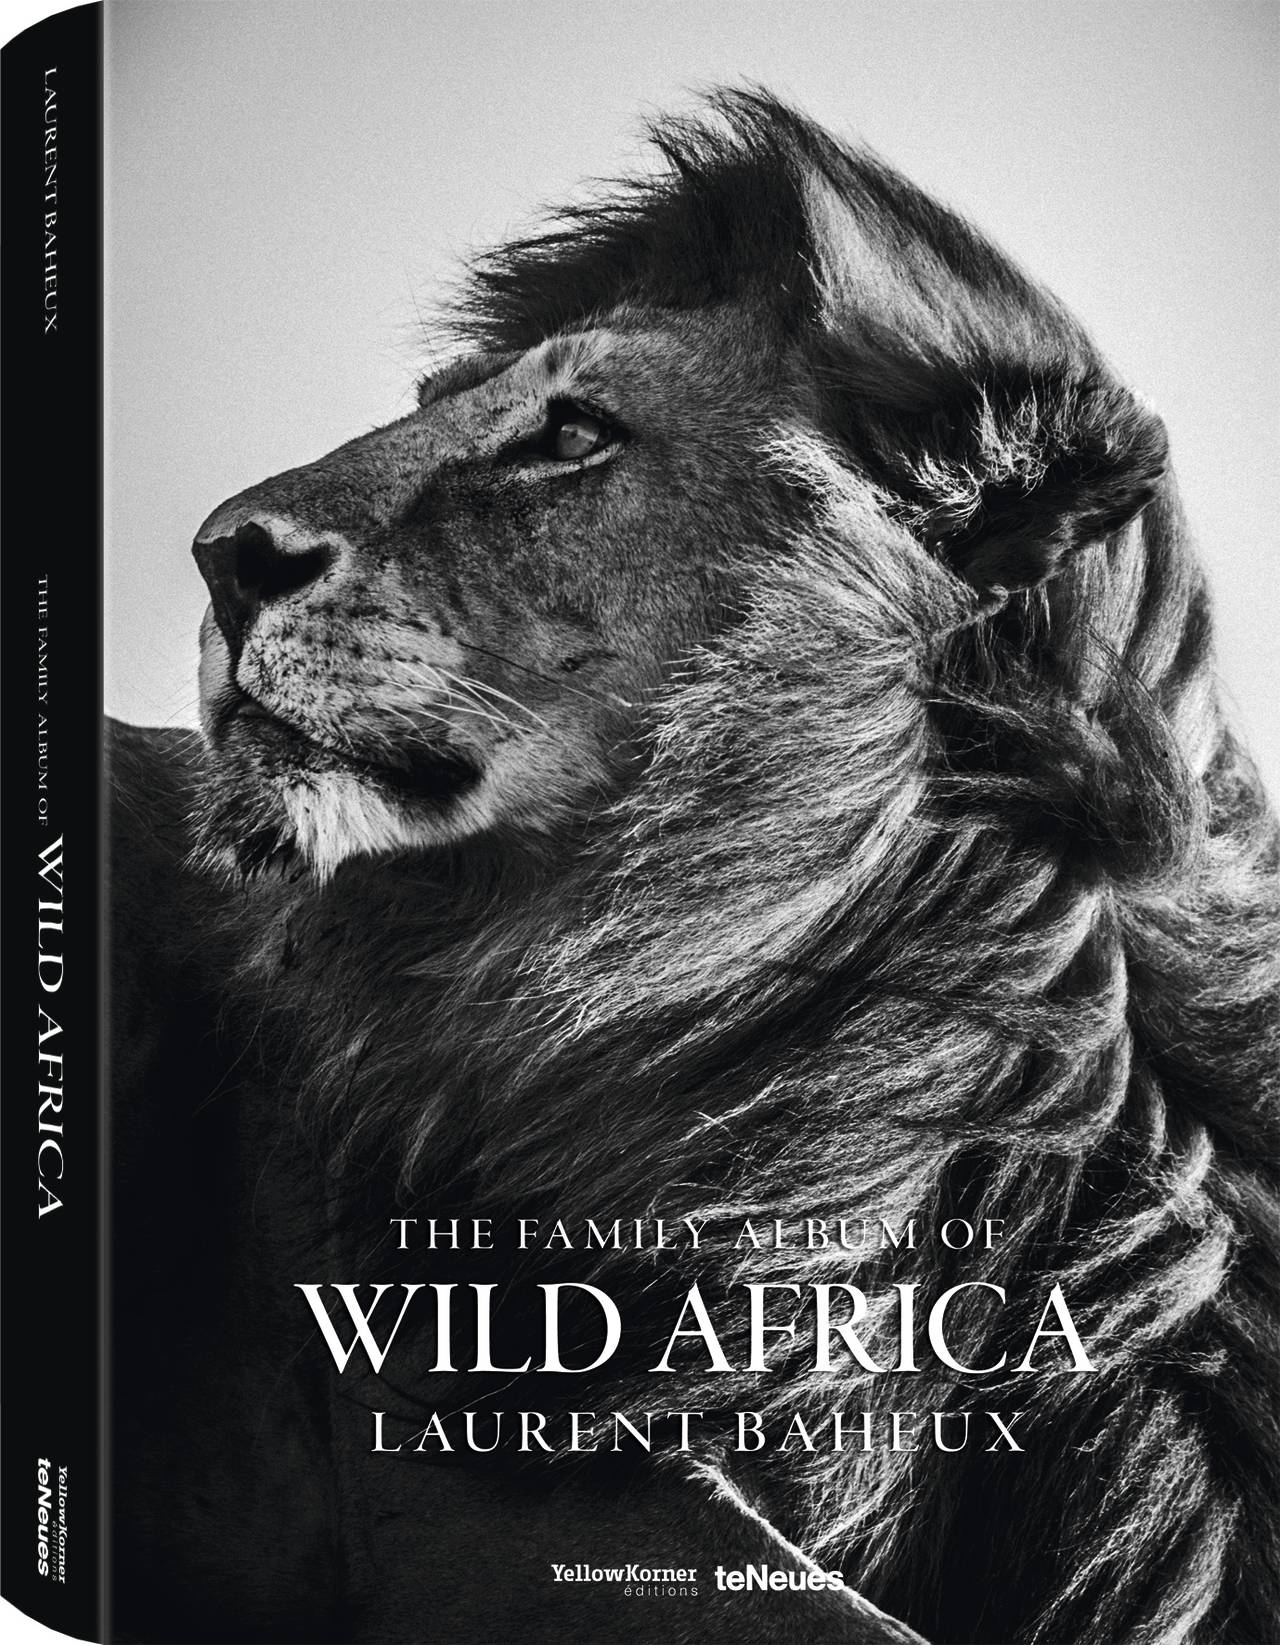 © The Family Album of Wild Africa by Laurent Baheux, published by teNeues and YellowKorner, www.teneues.com, www.yellowkorner.com. Photo © Laurent Baheux, www.laurentbaheux.com